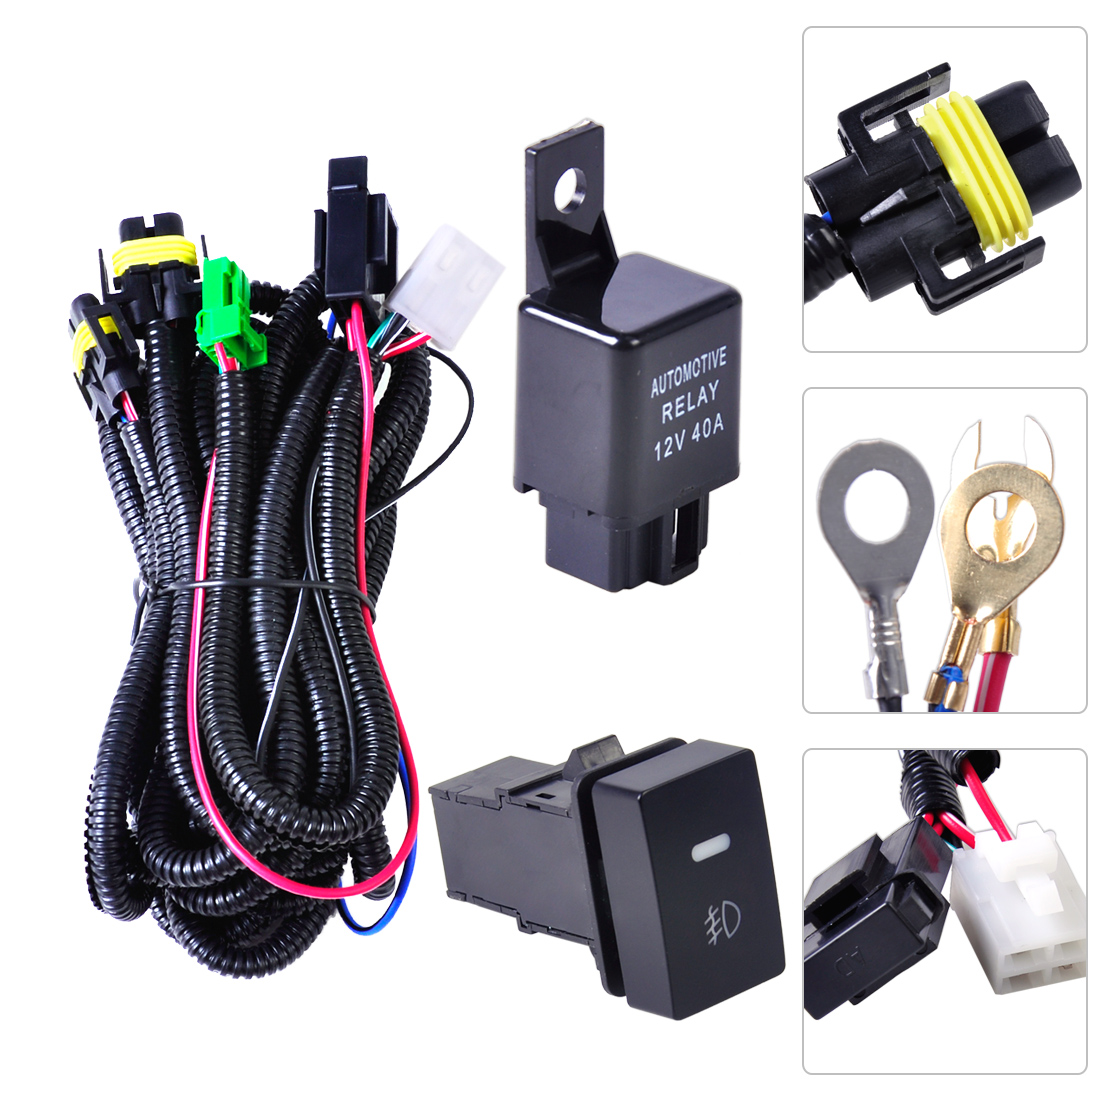 CITALL H11 Fog Light Lamp Wiring Harness Sockets Wire + Switch with LED  indicators Automotive Relay for Ford Focus Acura Nissan| | - AliExpresswww.aliexpress.com